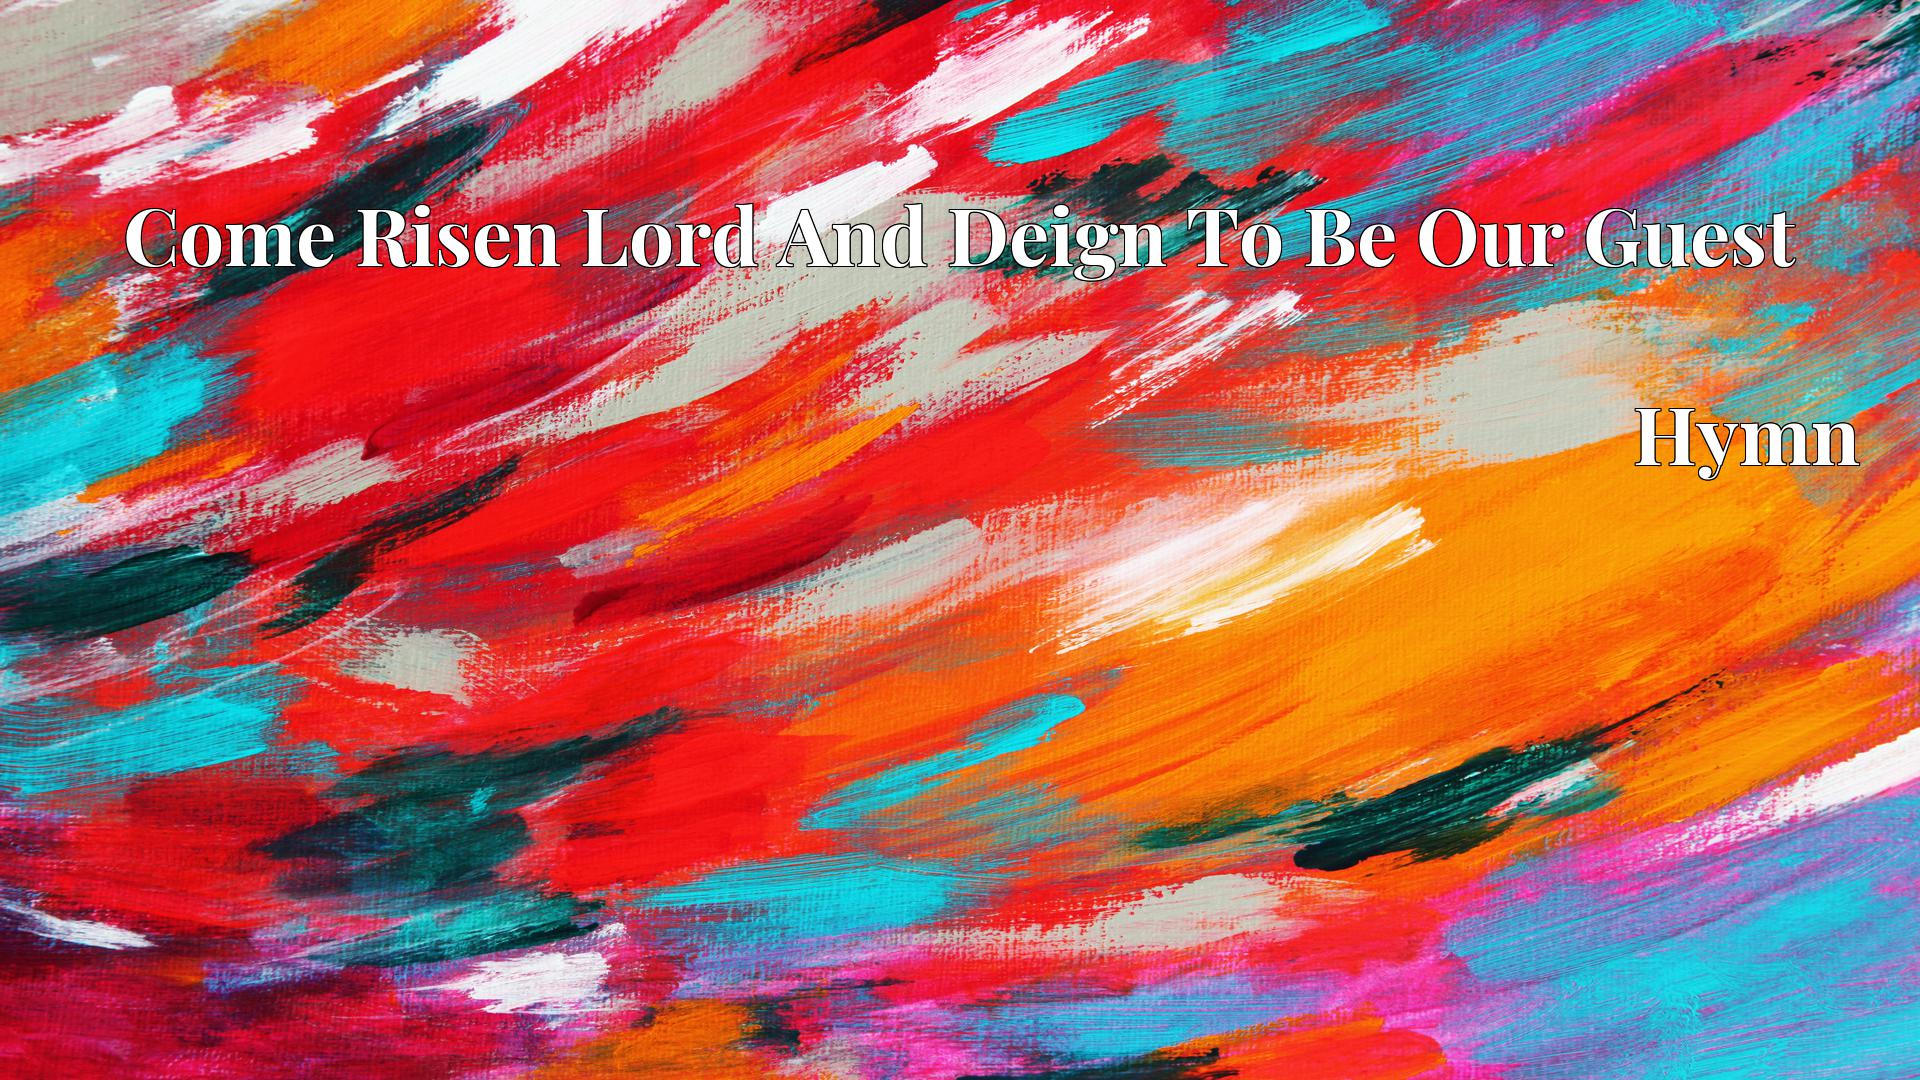 Come Risen Lord And Deign To Be Our Guest - Hymn